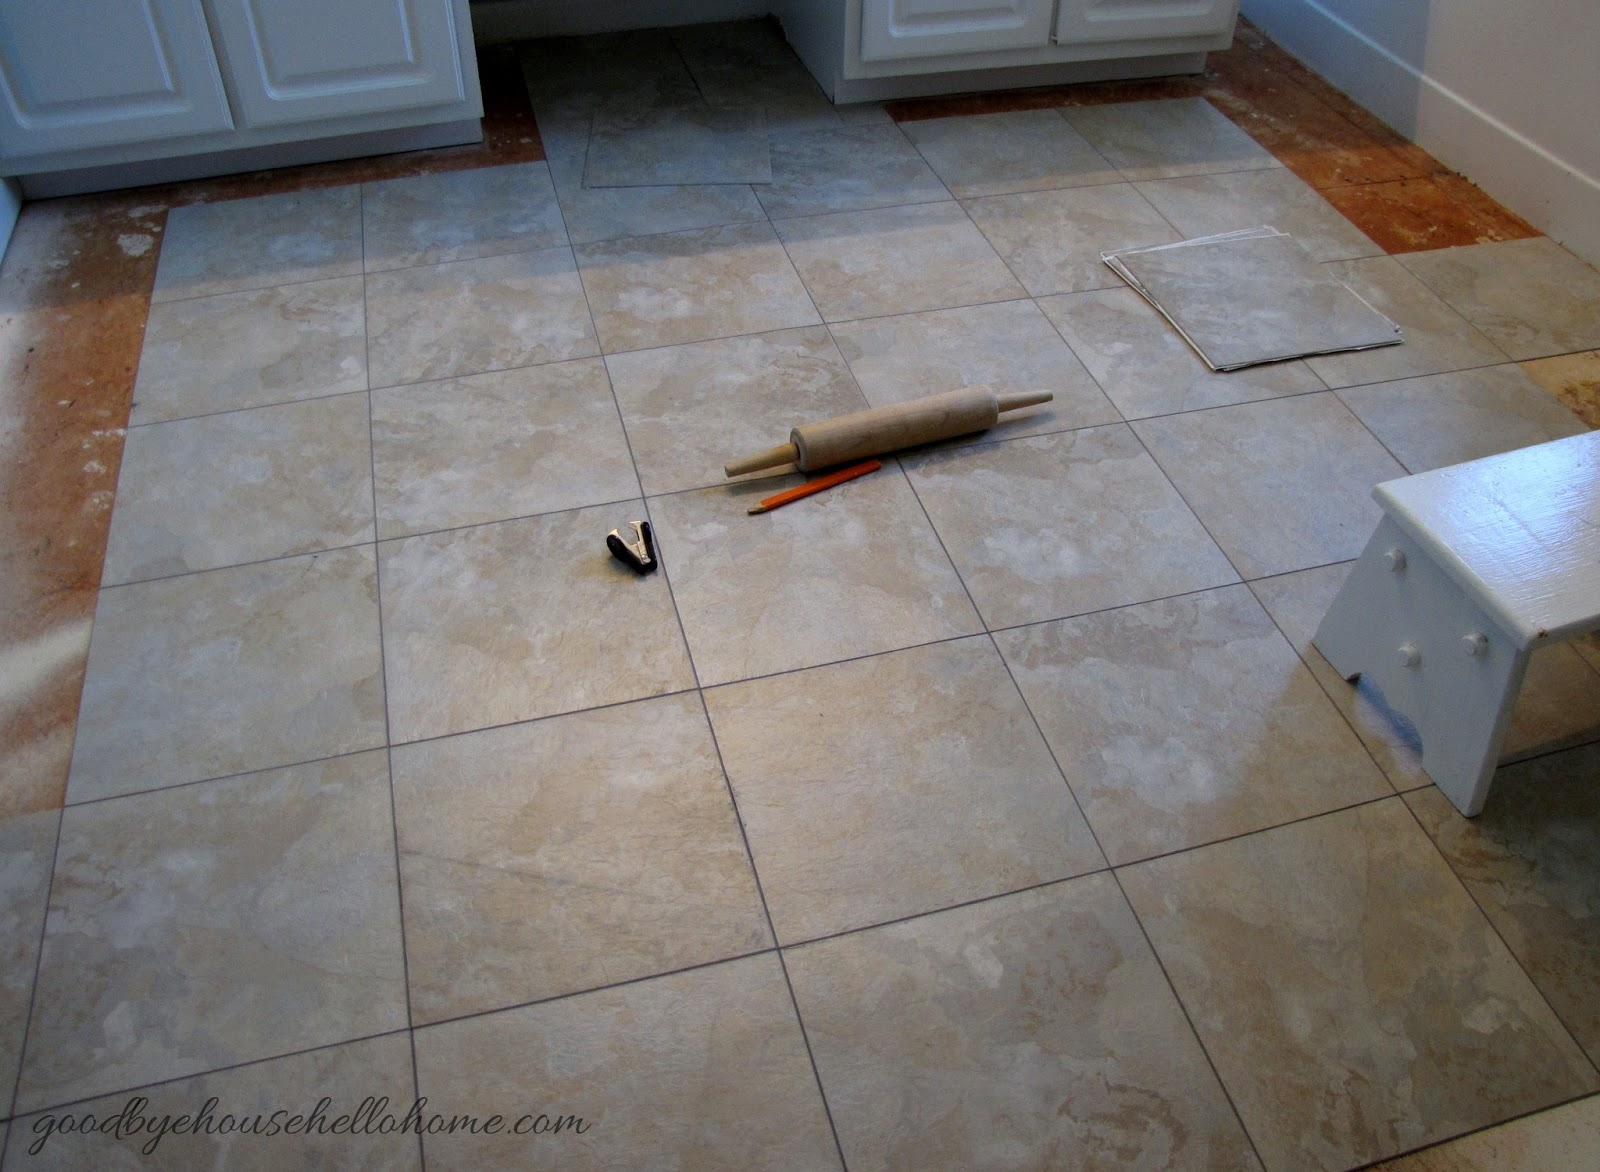 Goodbye house hello home blog how to install groutable vinyl tile blog how to install groutable vinyl tile dailygadgetfo Choice Image